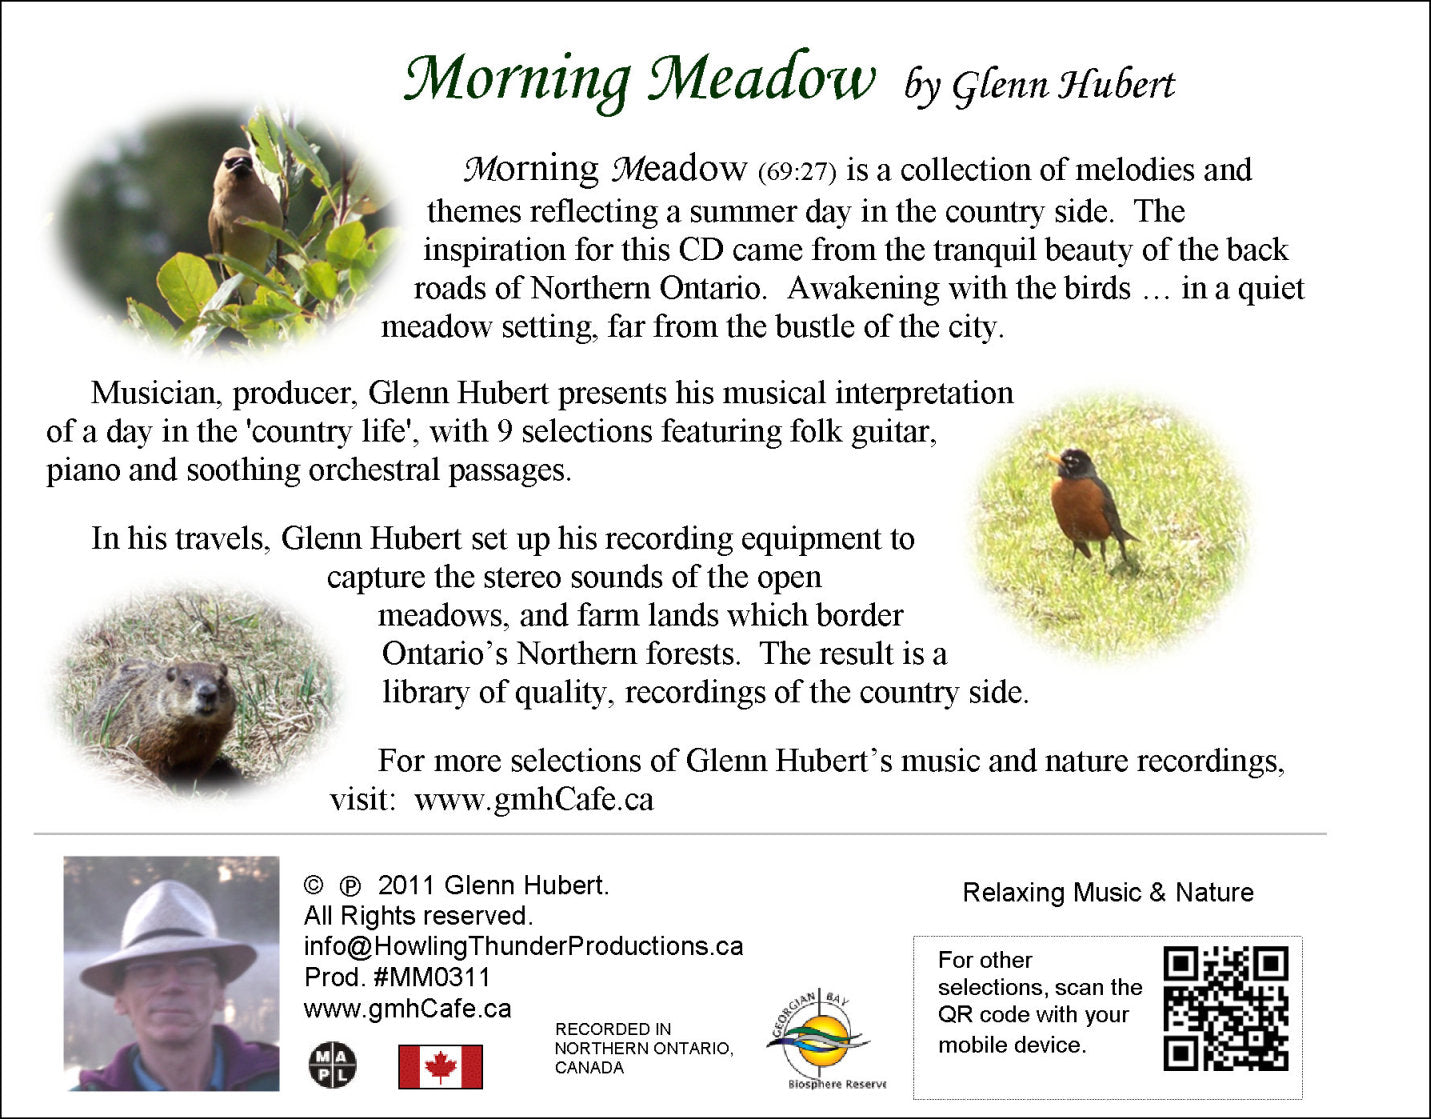 Morning Meadown Glenn Hubert CD back